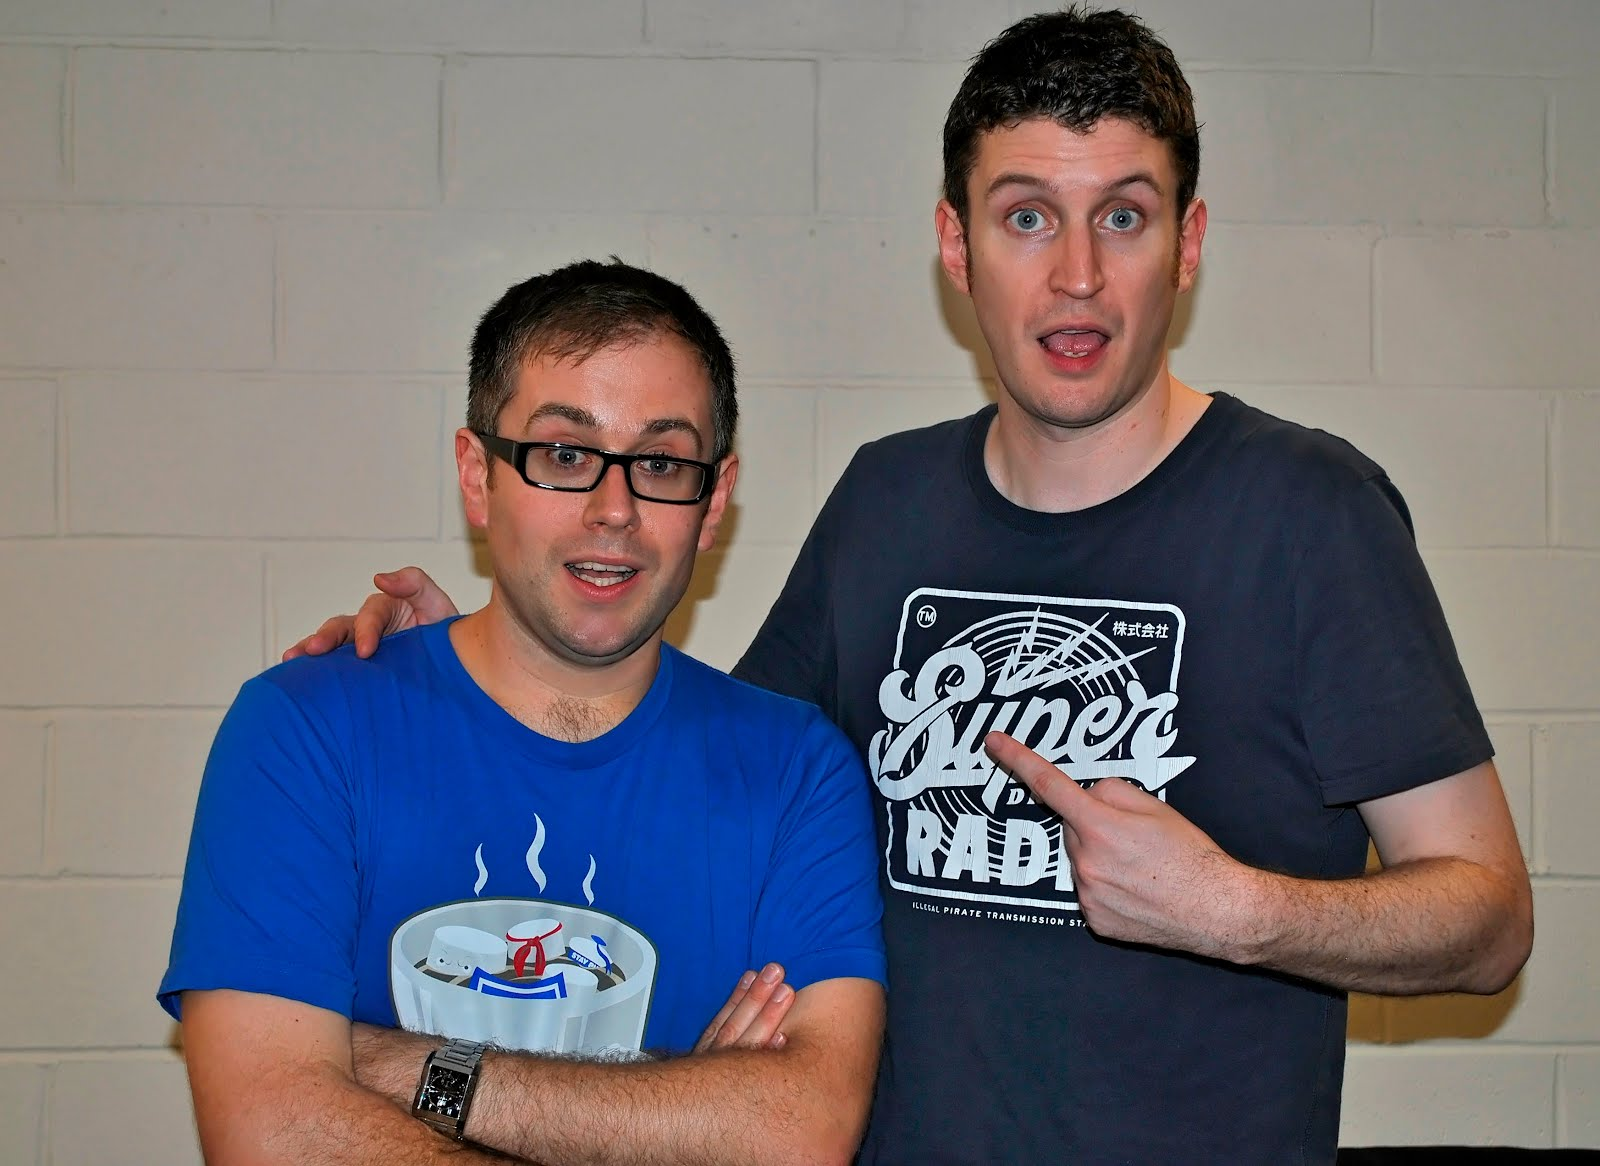 BWW Interviews: POTTED POTTER's Dan & Jeff Talk New Cast in Manila Run, Memories of the Philippines & More!